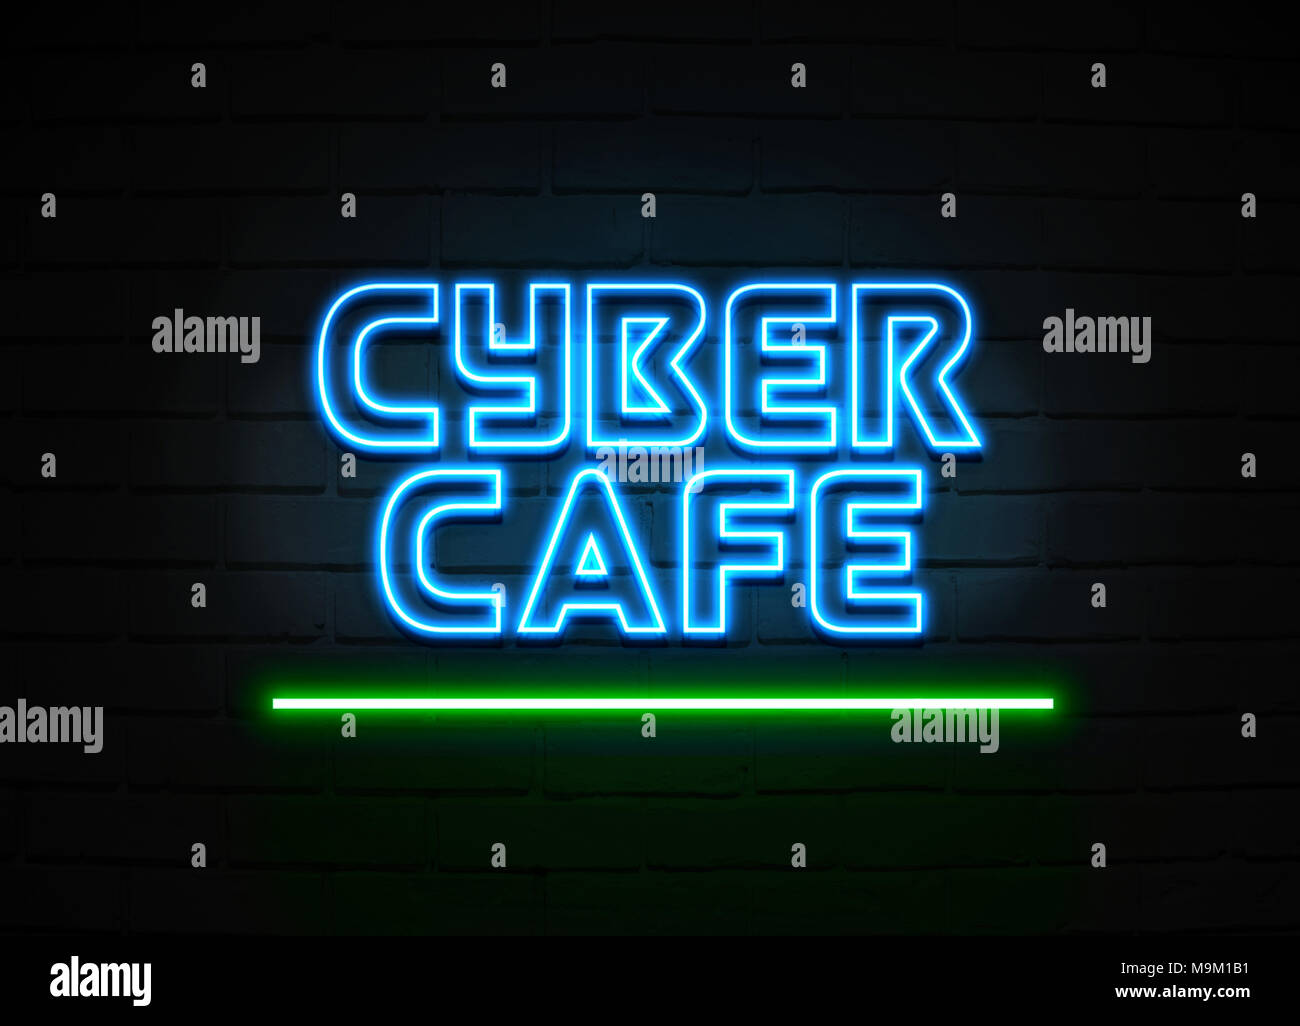 Cyber Cafe Stock Photos & Cyber Cafe Stock Images - Alamy